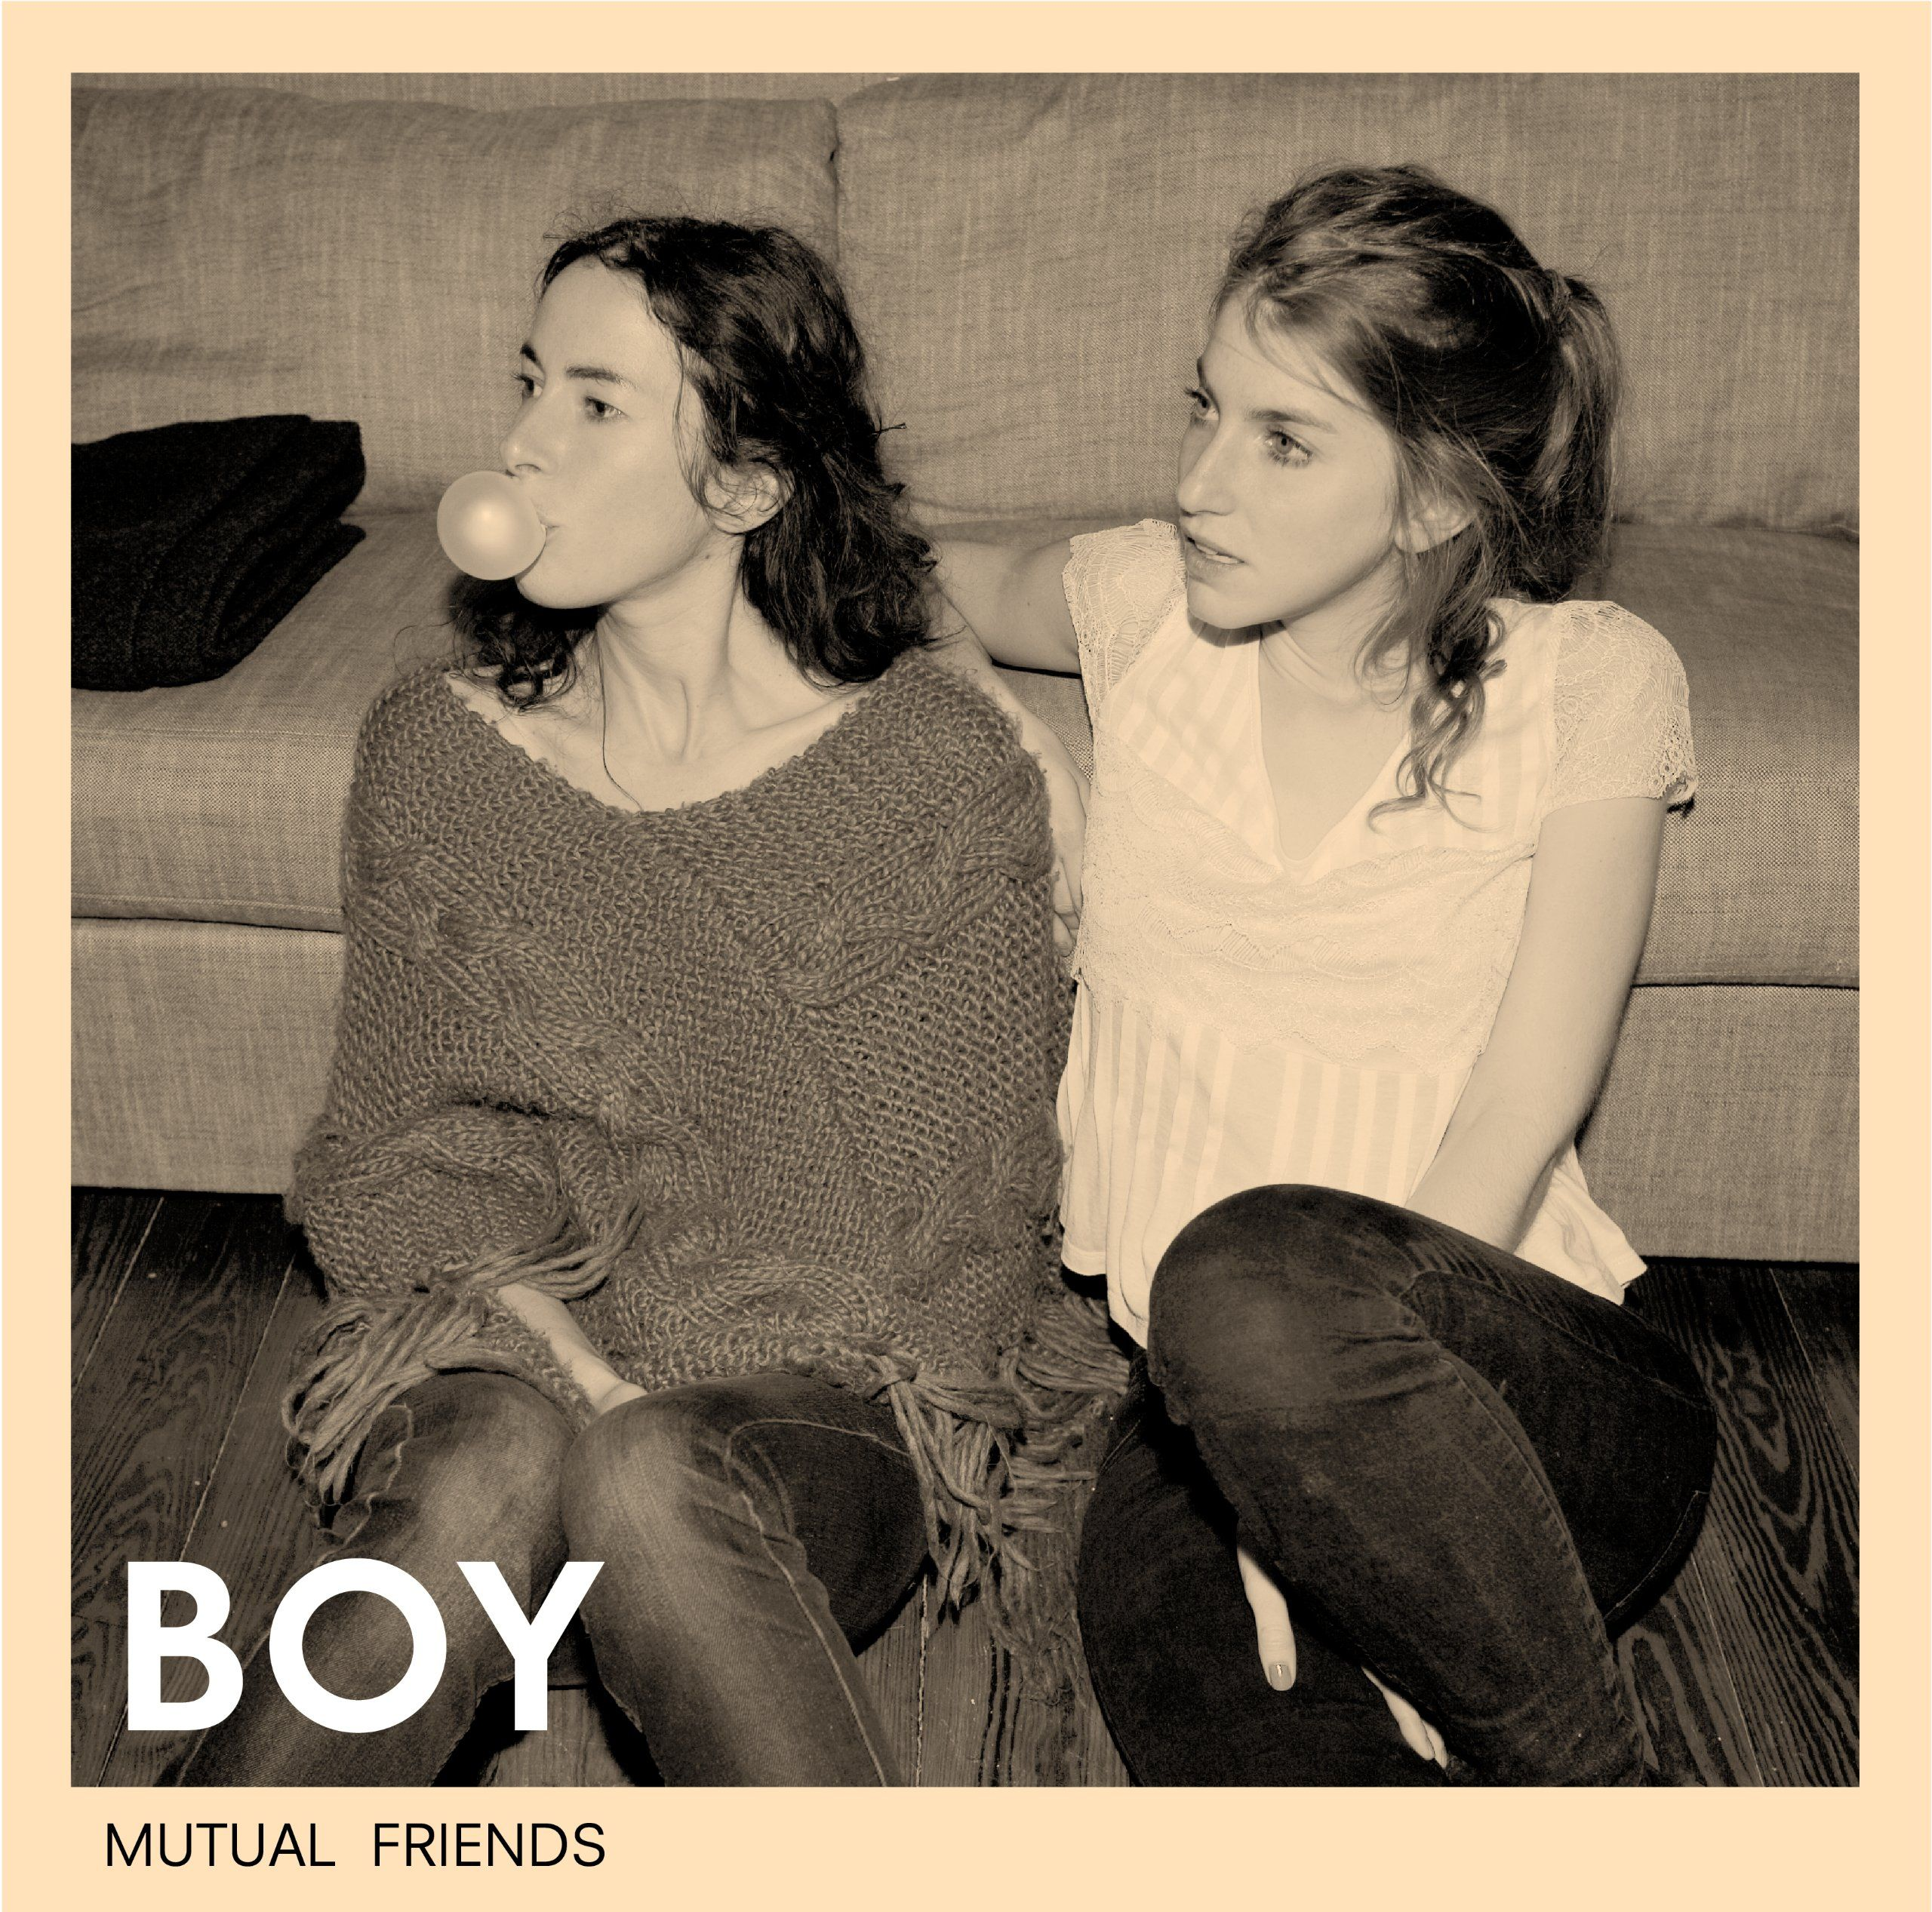 BOY - Mutual Friends album cover